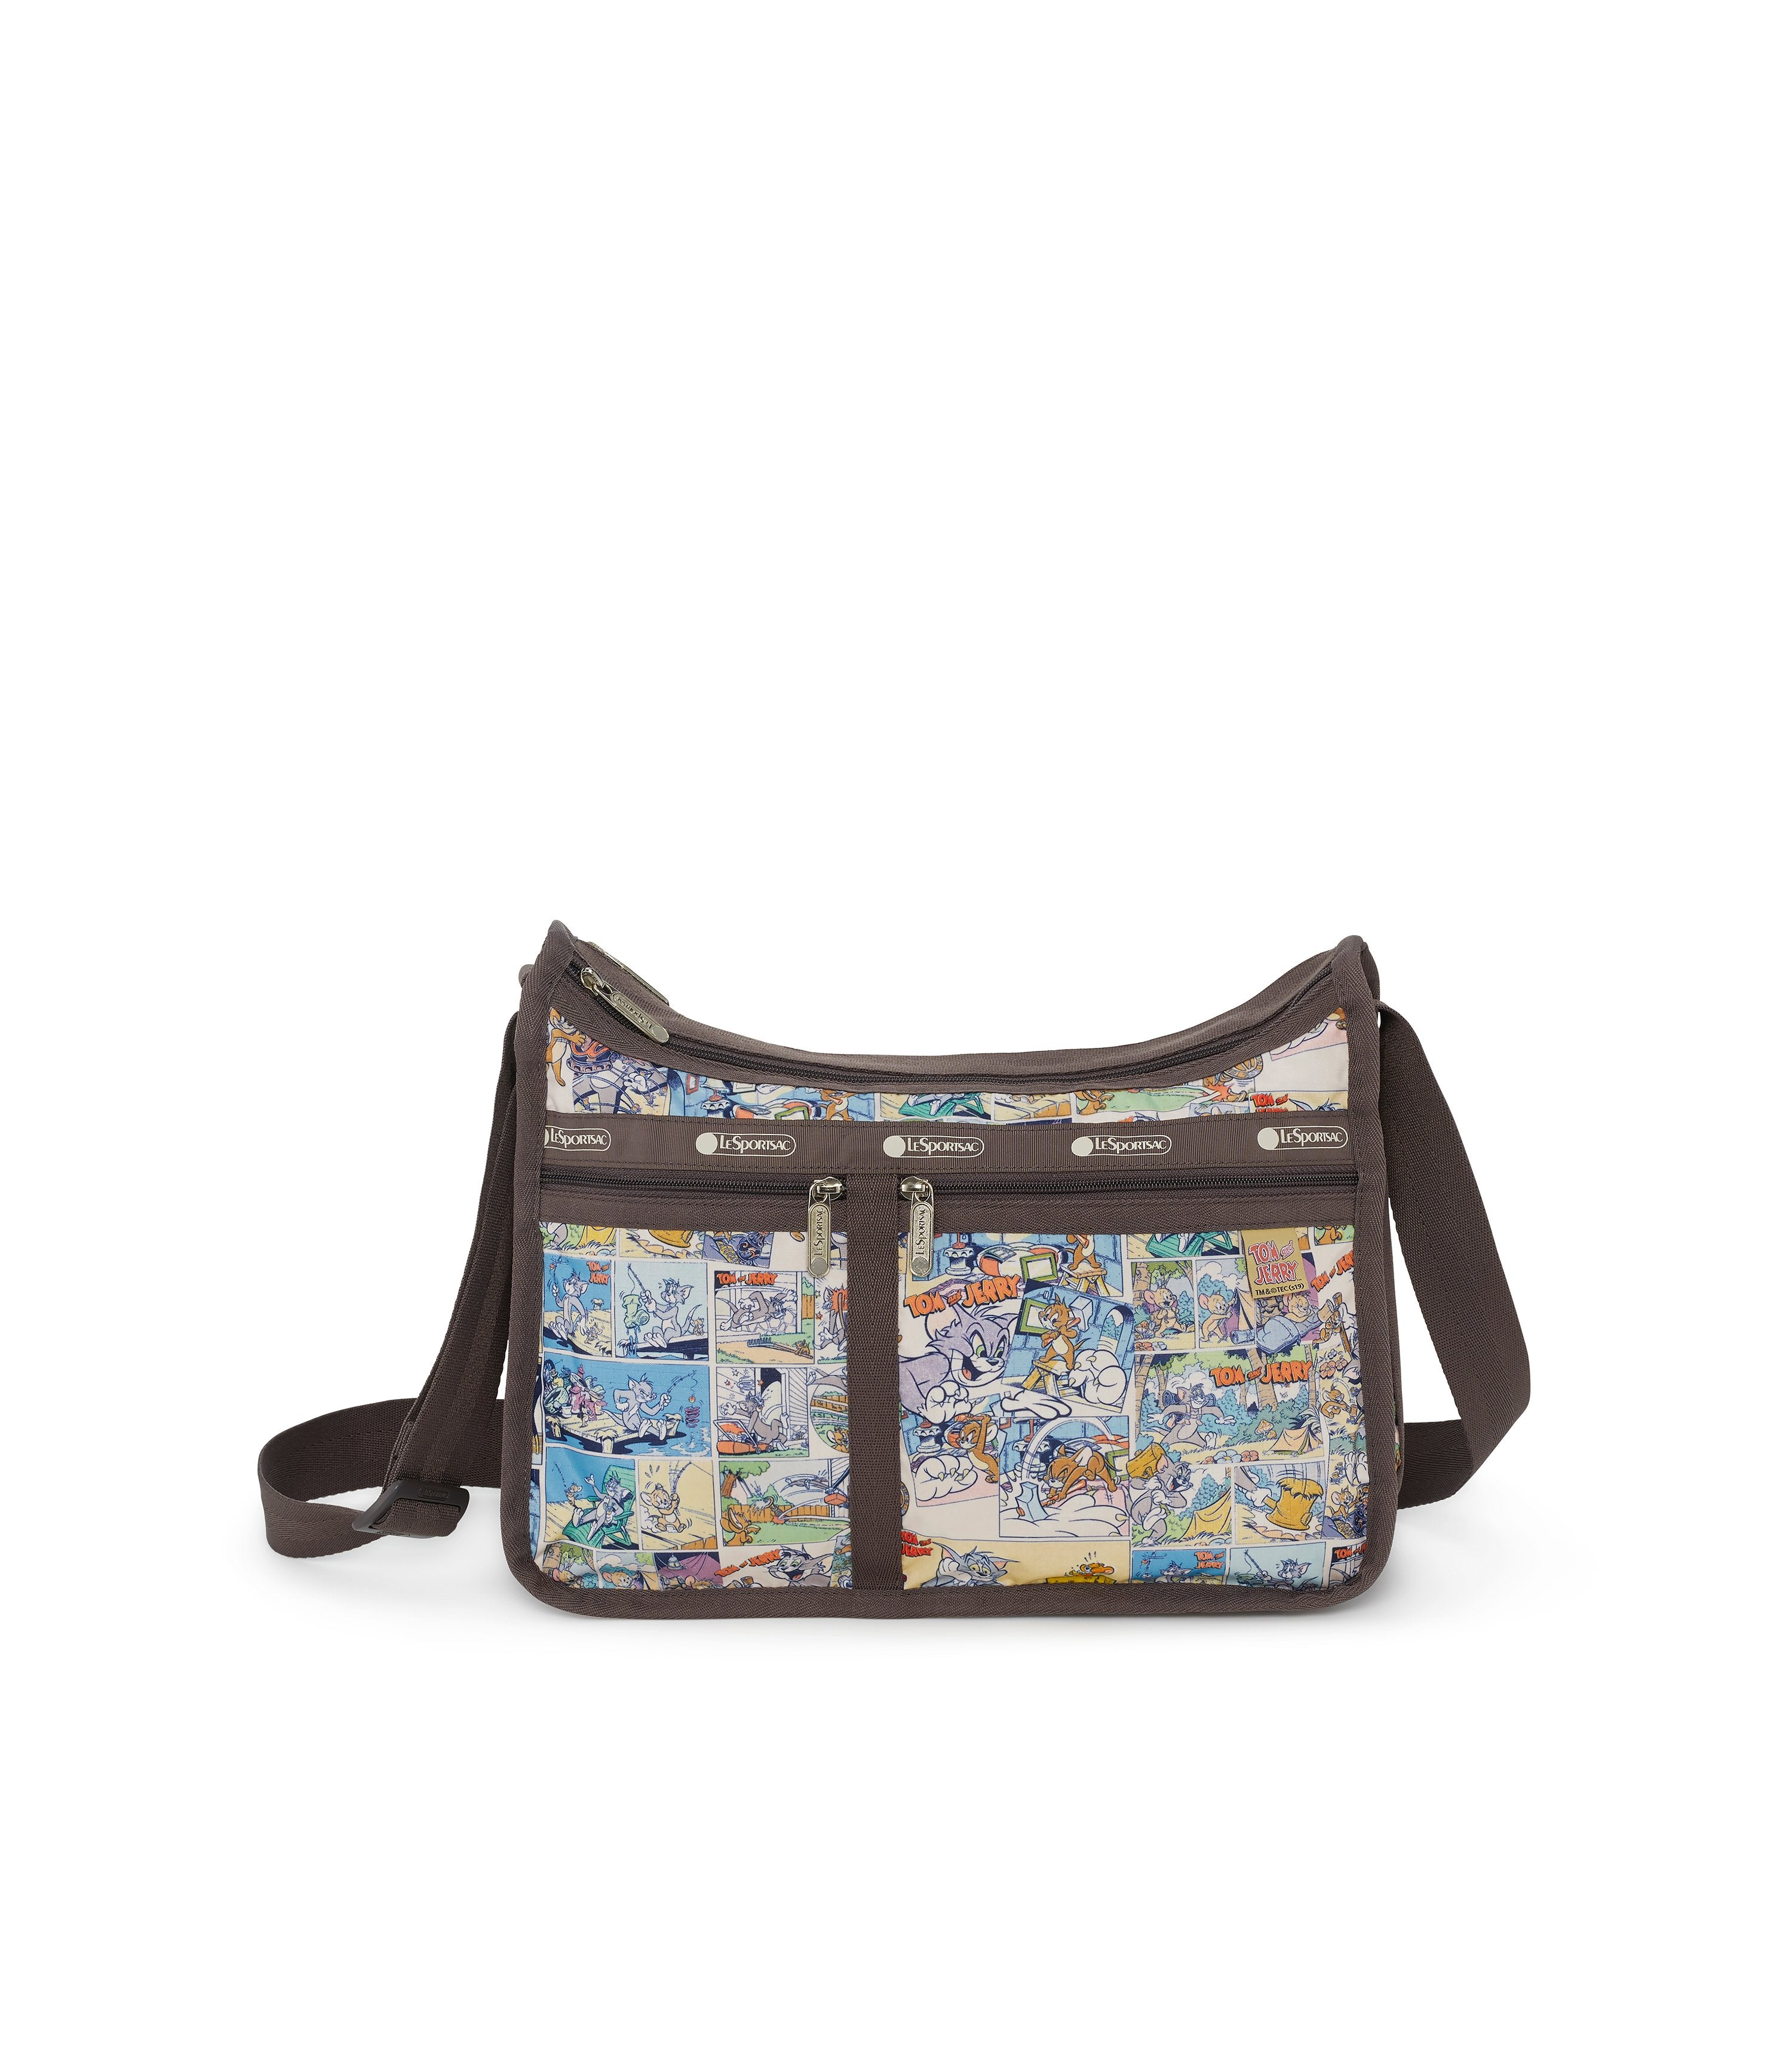 Deluxe Everyday Bag, Nylon Handbags and Classic Purses, cartoon, Crossbody, Tom and Jerry print, Sale